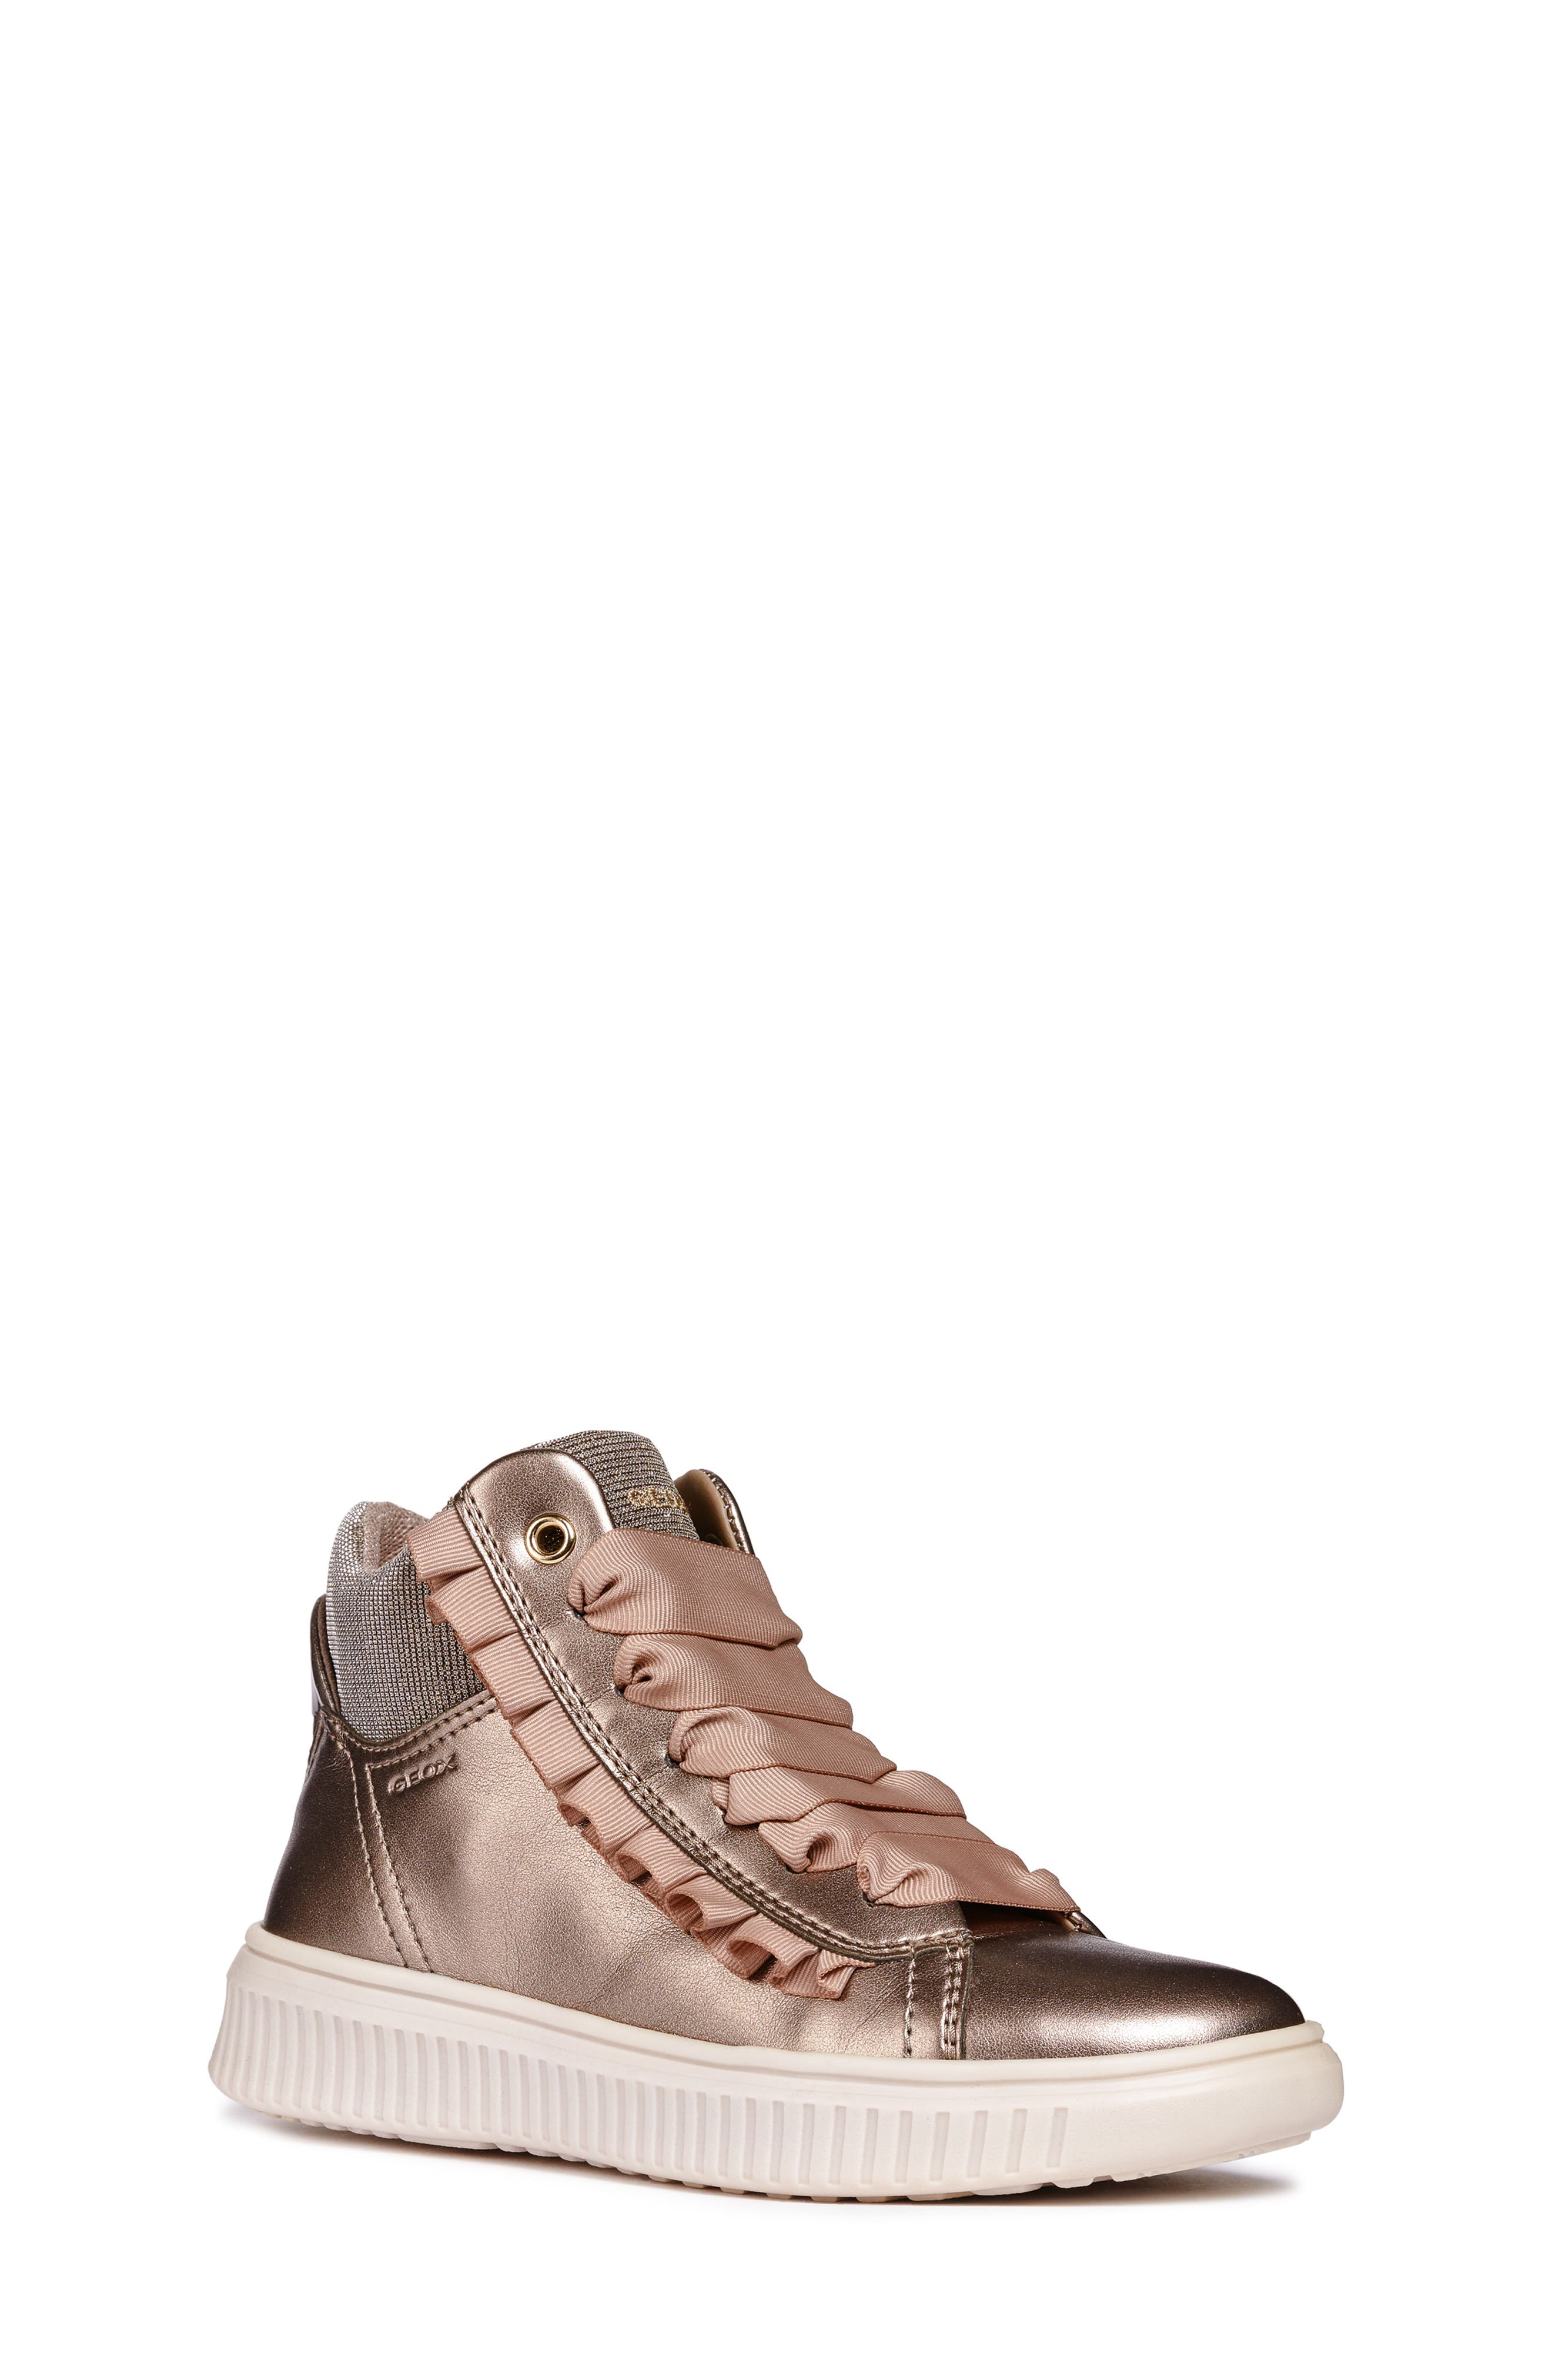 Disco Mix High-Top Sneaker,                         Main,                         color, LEAD